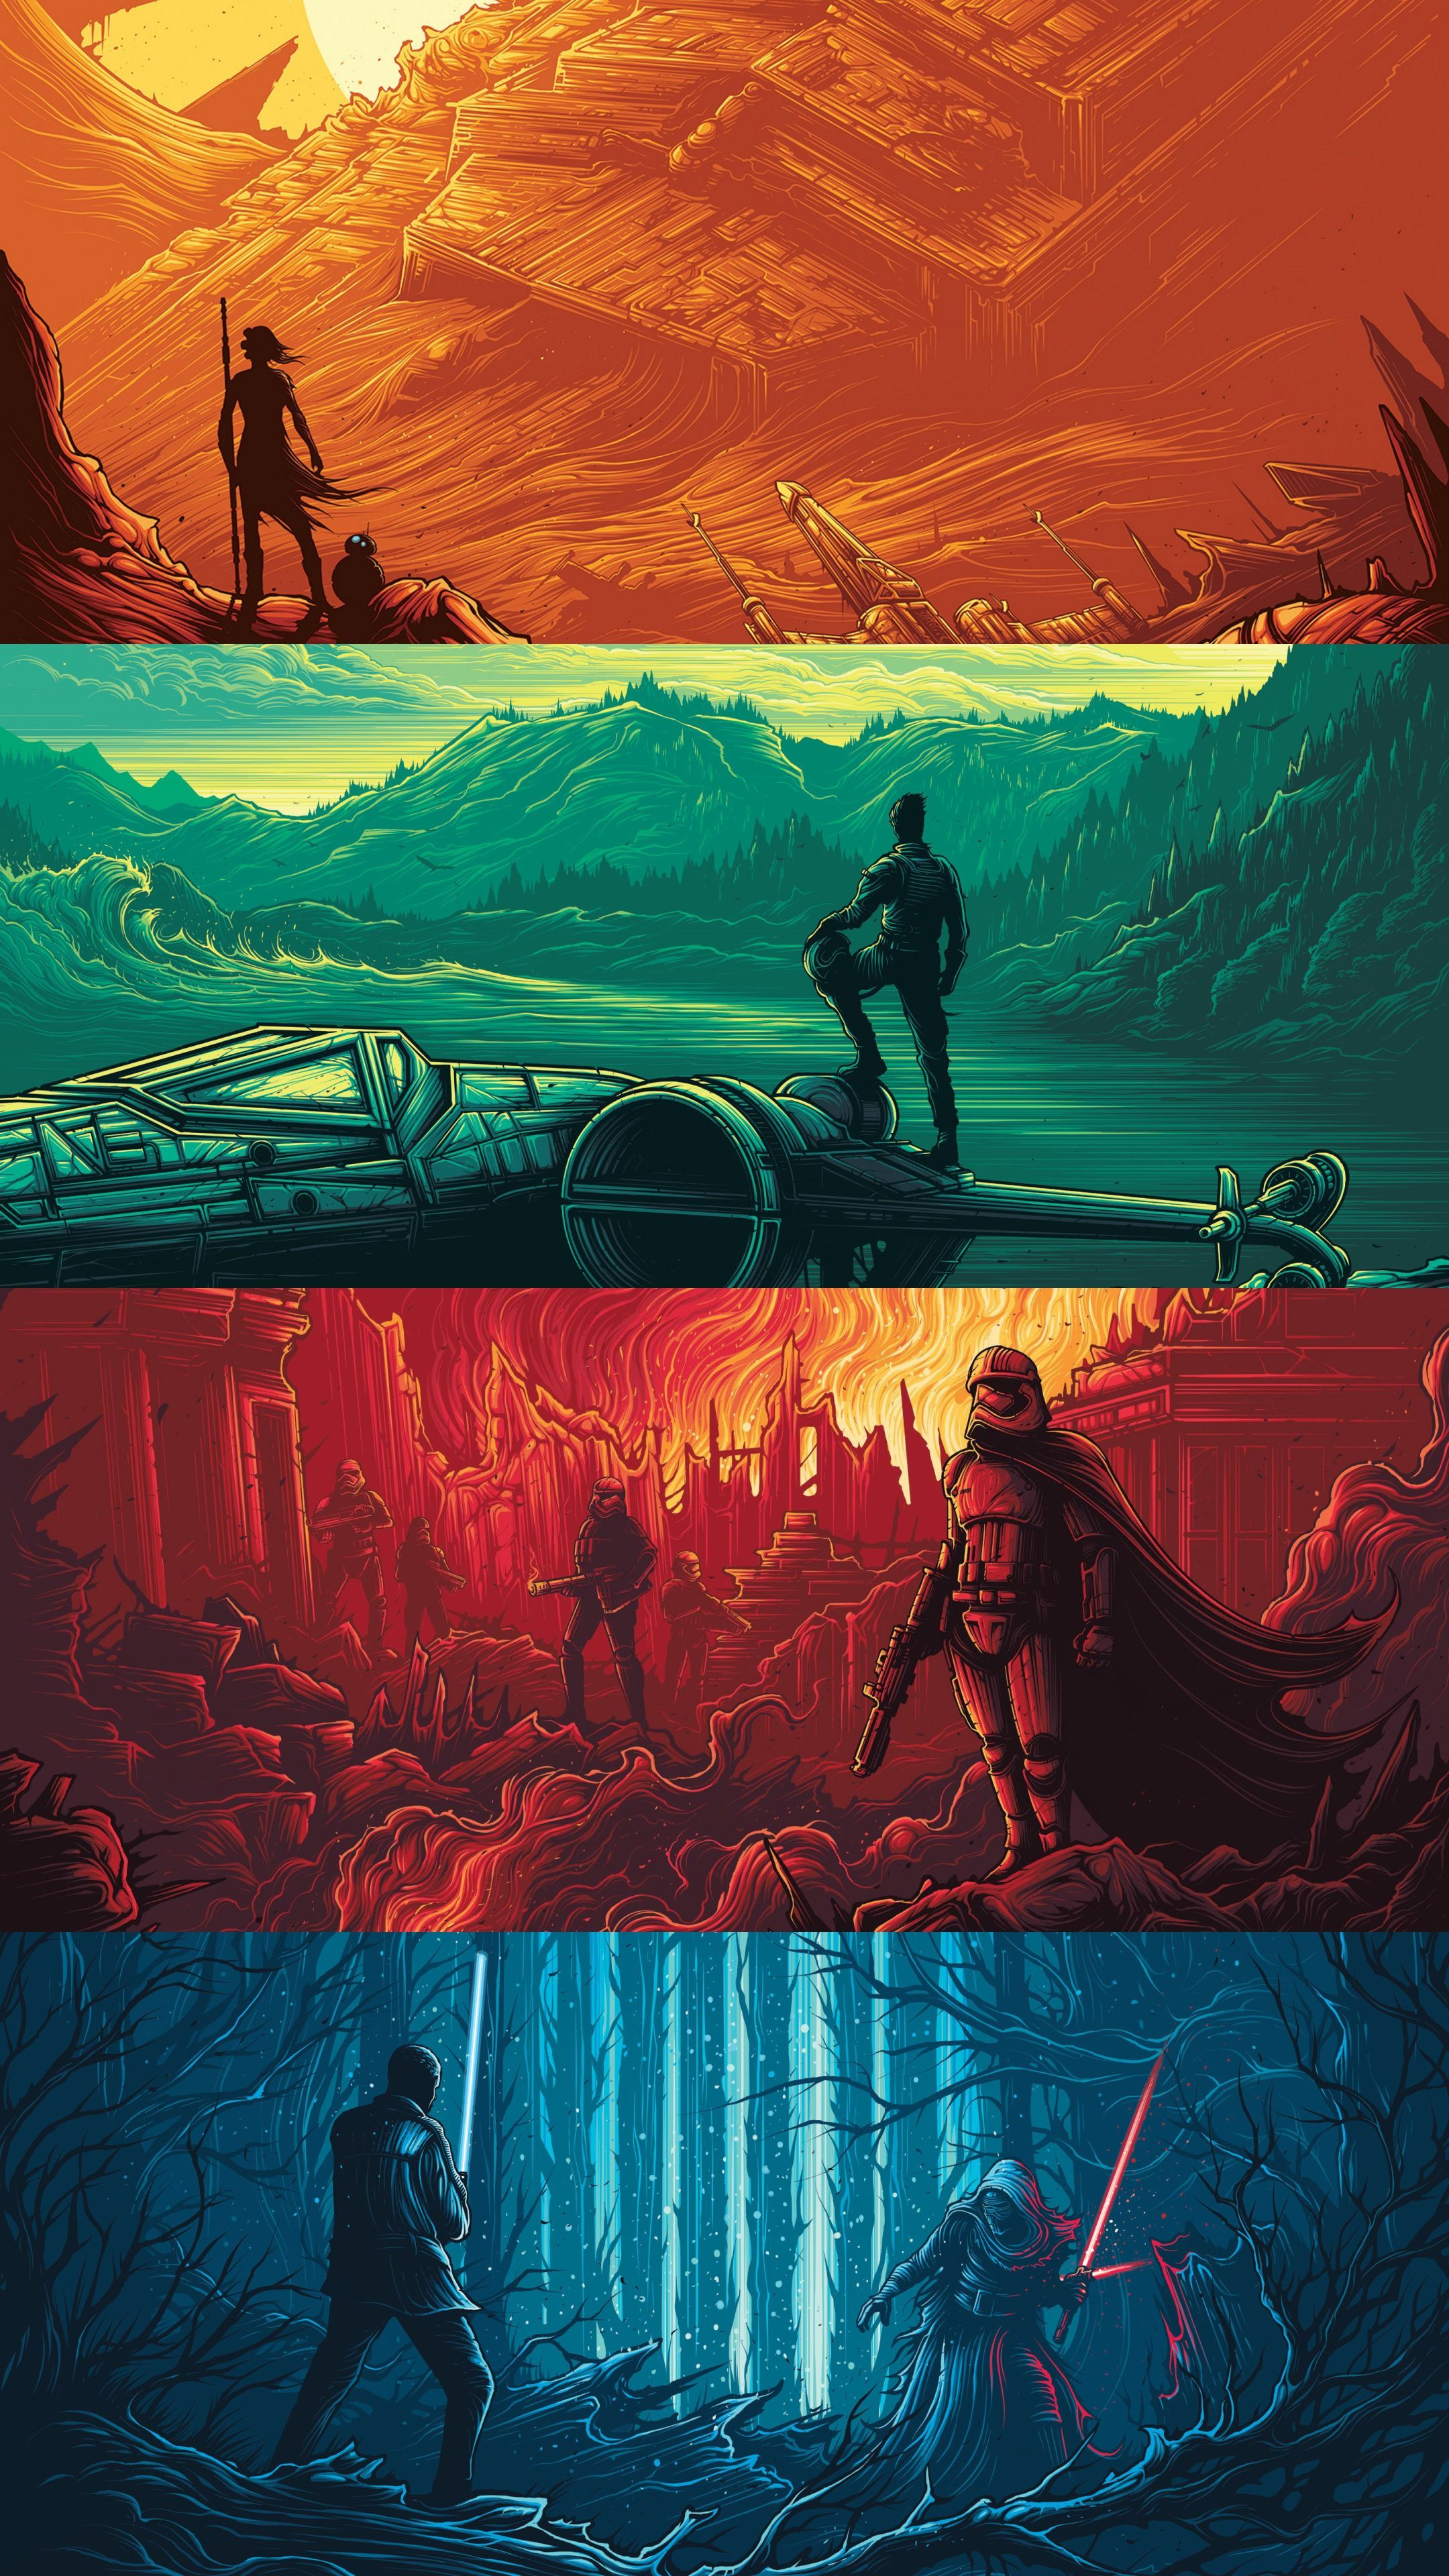 Epic Phone Wallpapers Top Free Epic Phone Backgrounds Wallpaperaccess In 2020 Star Wars Pictures Star Wars Wallpaper Star Wars Art